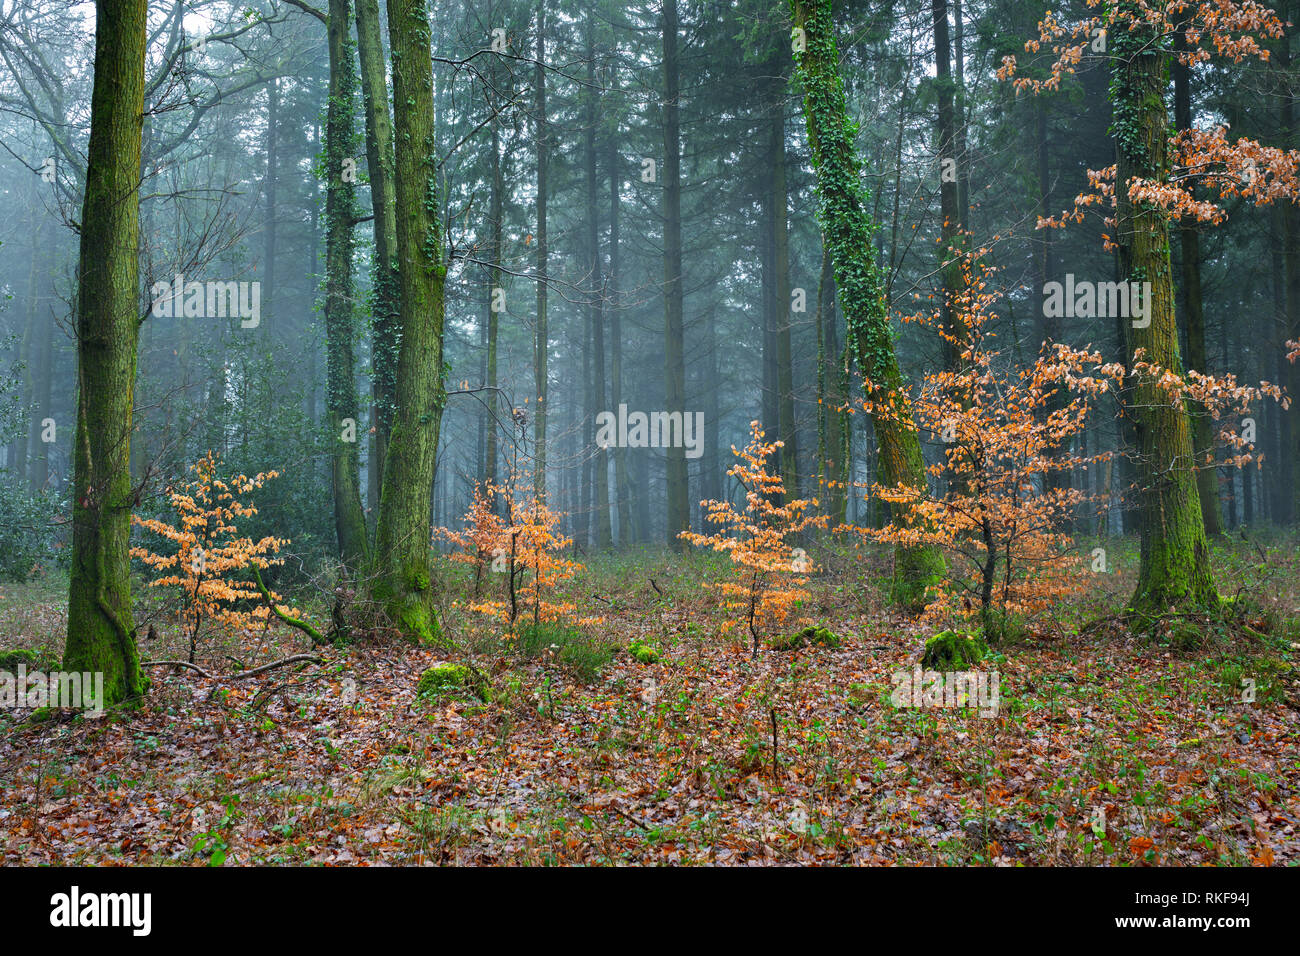 Immature Beech trees in a predominantly Conifer woodland. - Stock Image